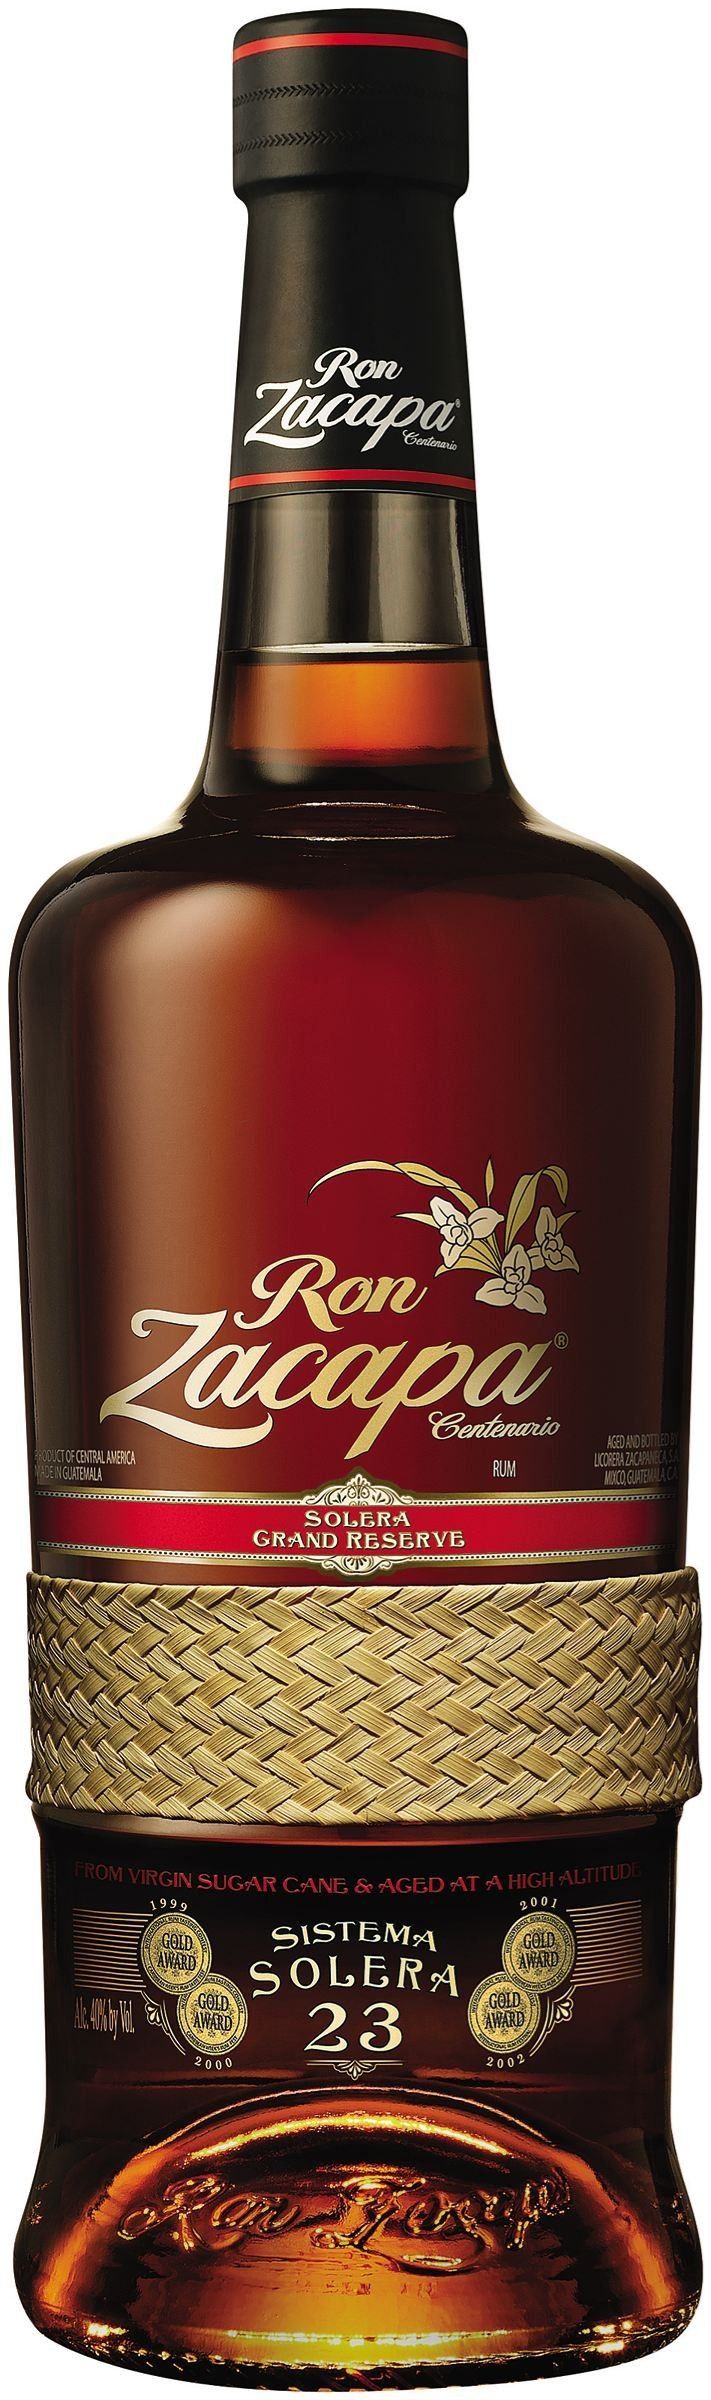 1000 images about ron zacapa on pinterest for Food bar zacapa